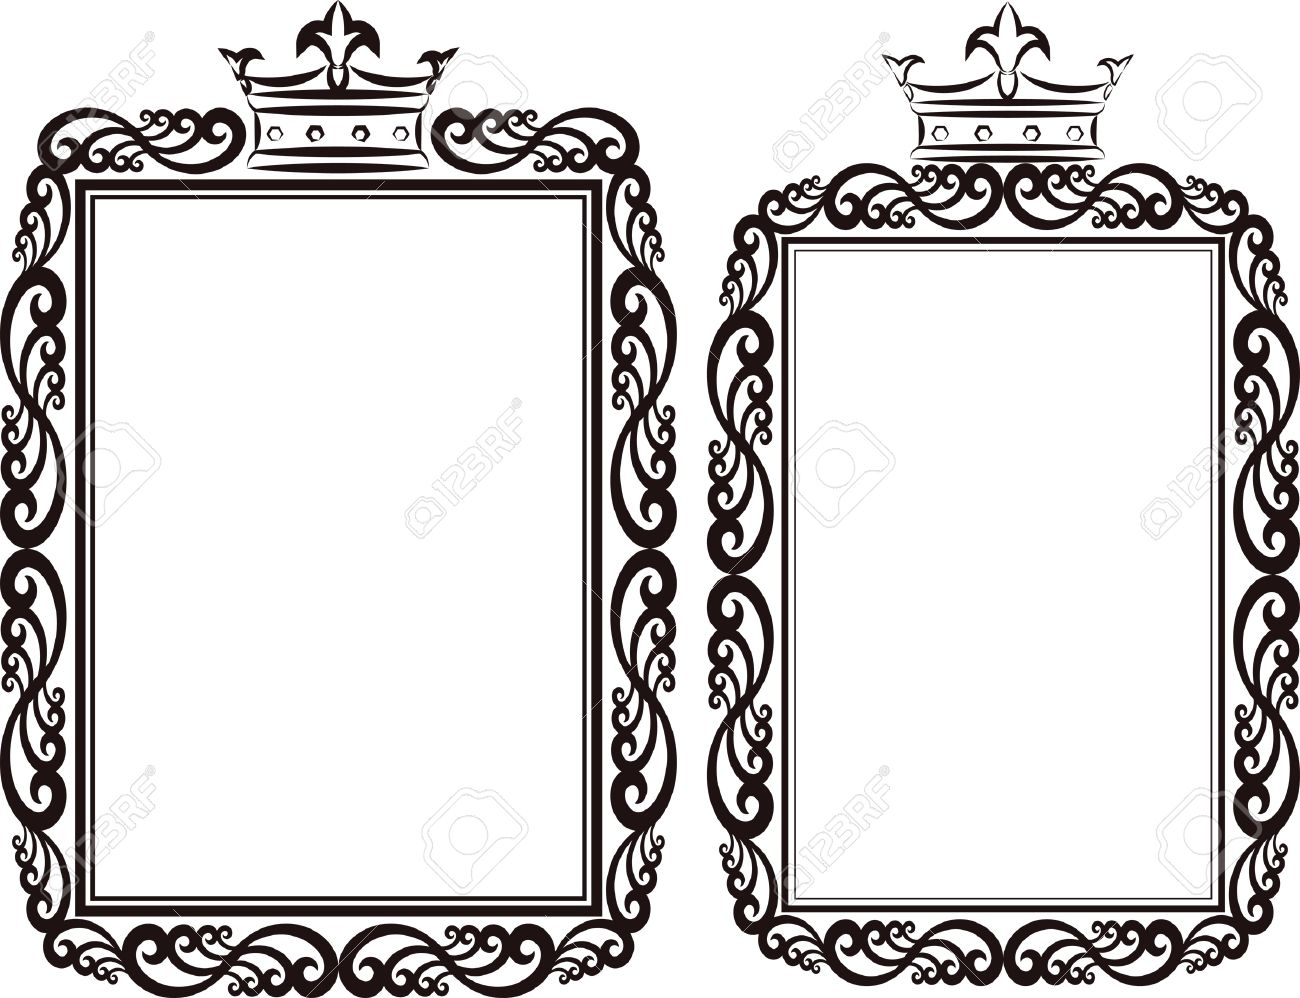 royal border clip art illustration royalty free cliparts vectors rh 123rf com free clipart borders for labels free clip art borders and frames